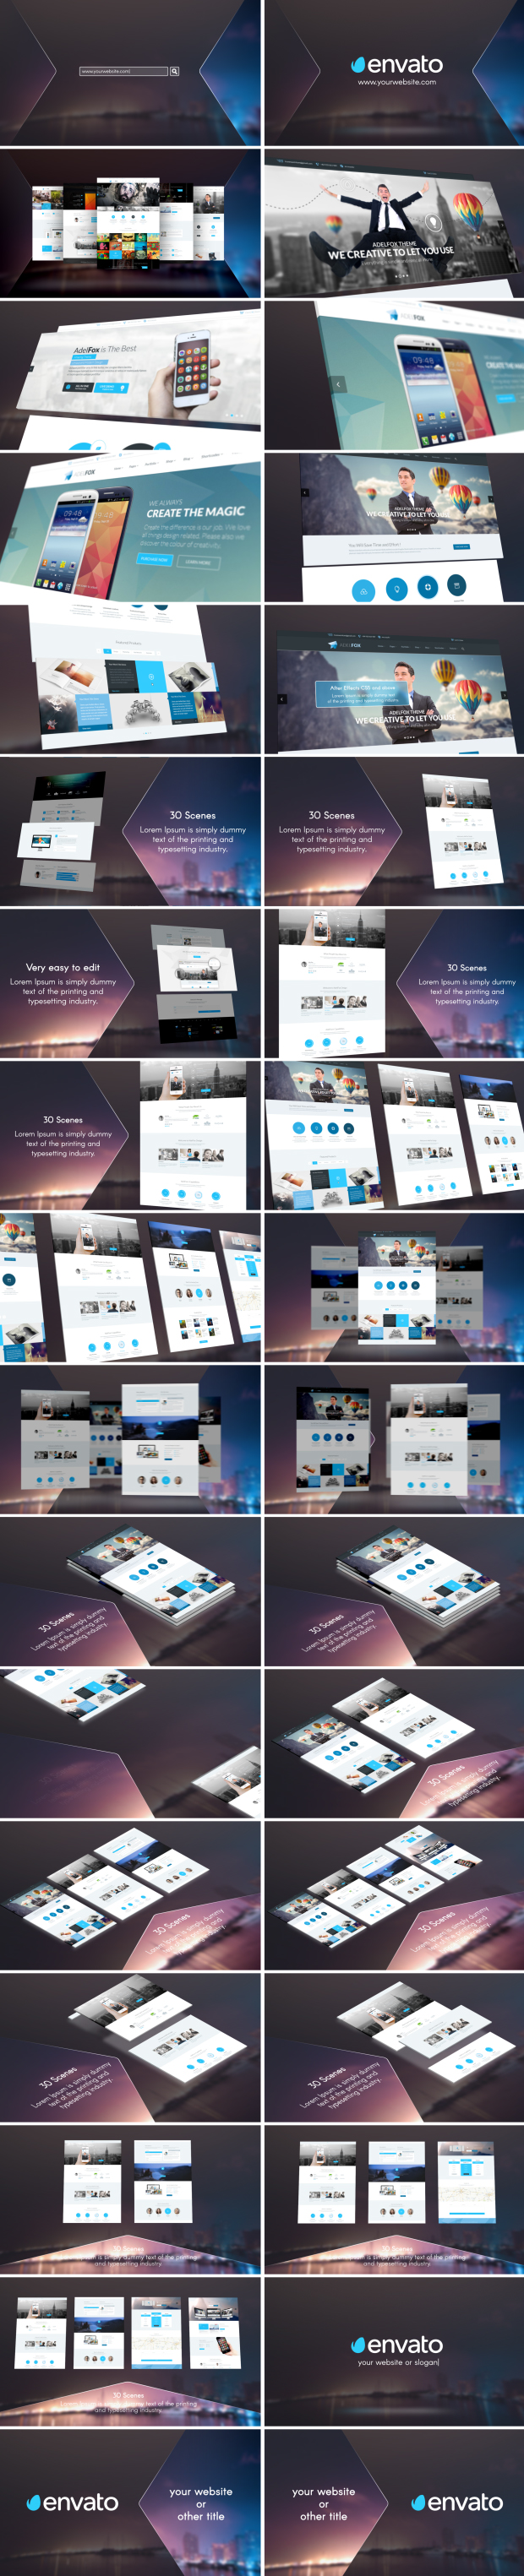 Minimal Website Presentation Pack - stena.jpg